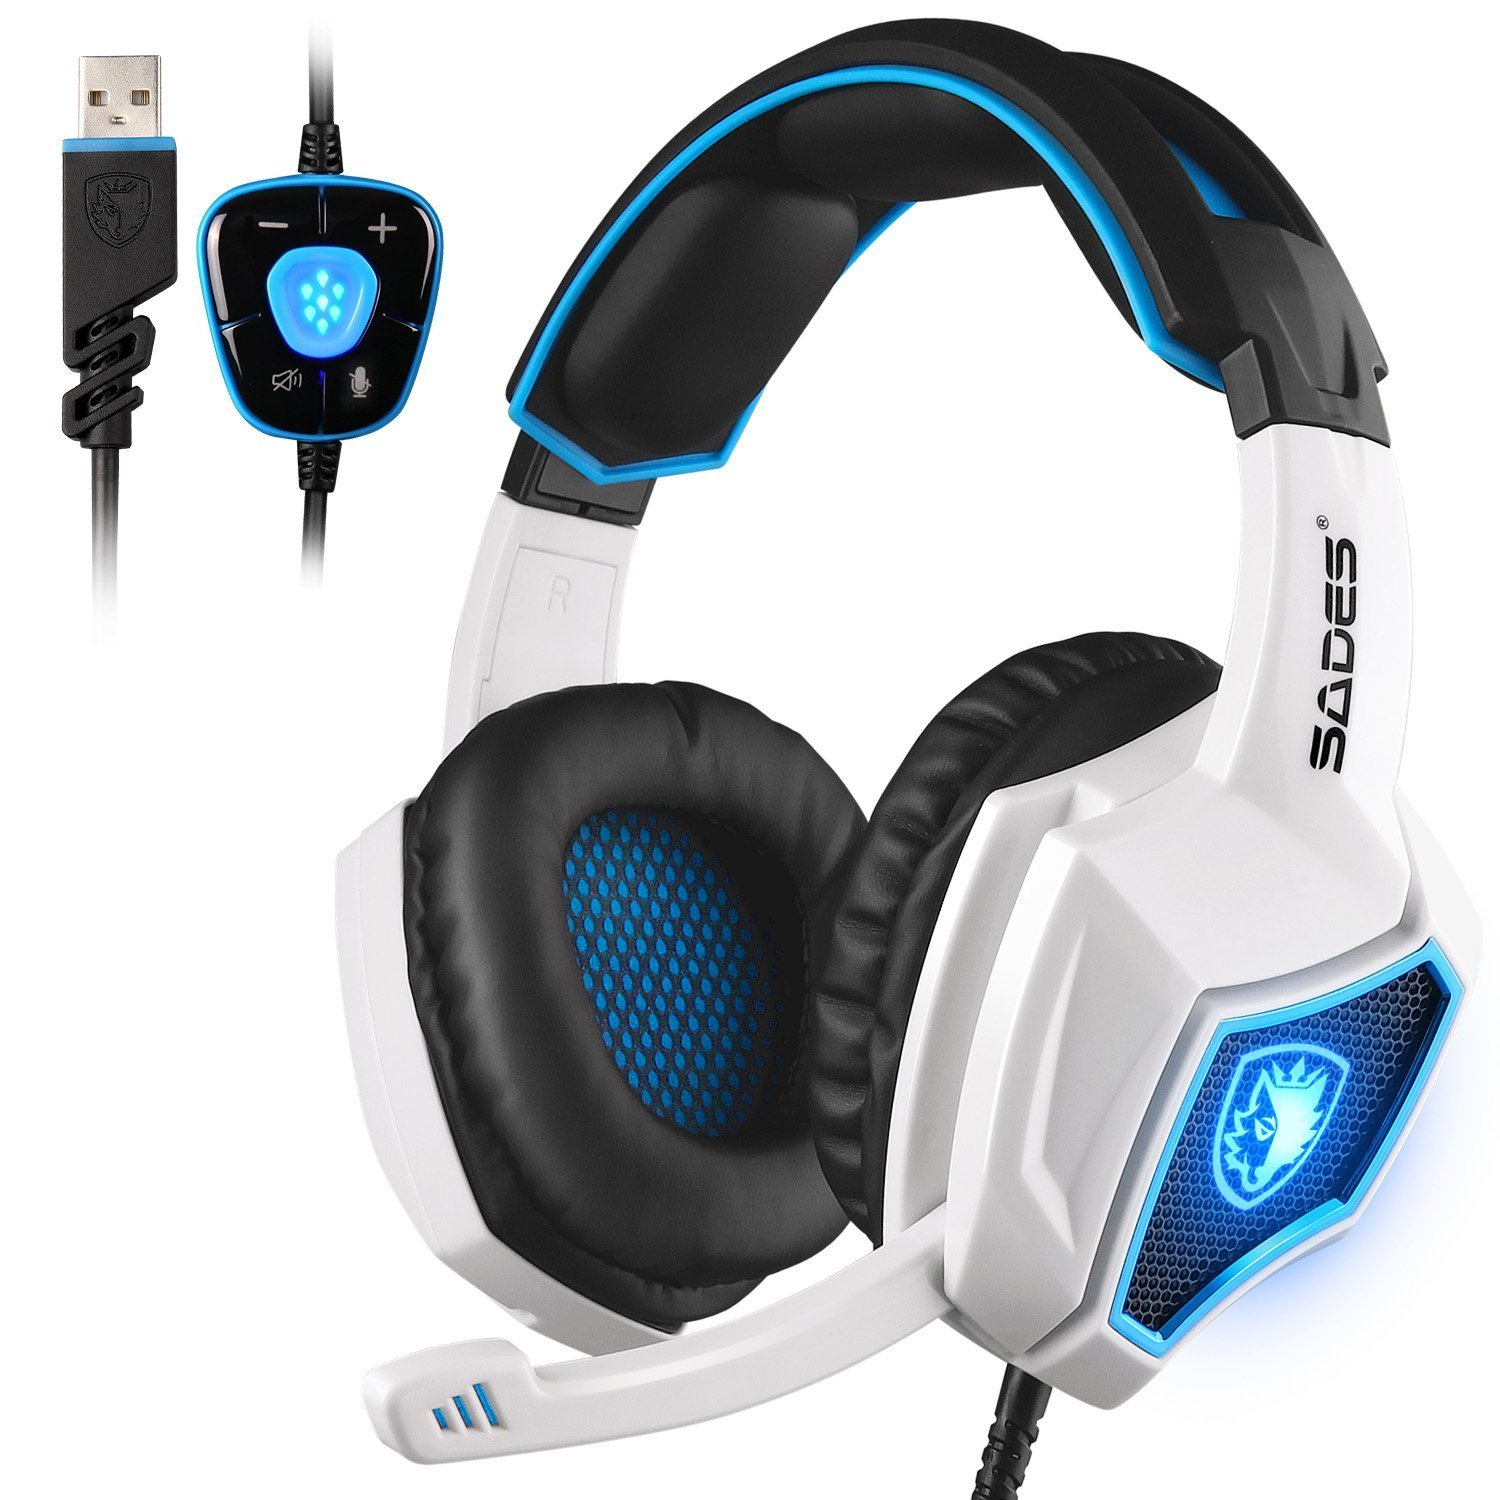 SADES Spirit Wolf 7.1 Surround Stereo Sound USB Computer Gaming Headset with Microphone,Over-the-Ear Noise Isolating,Breathing LED Light For PC Gamers (Black White) by SADES